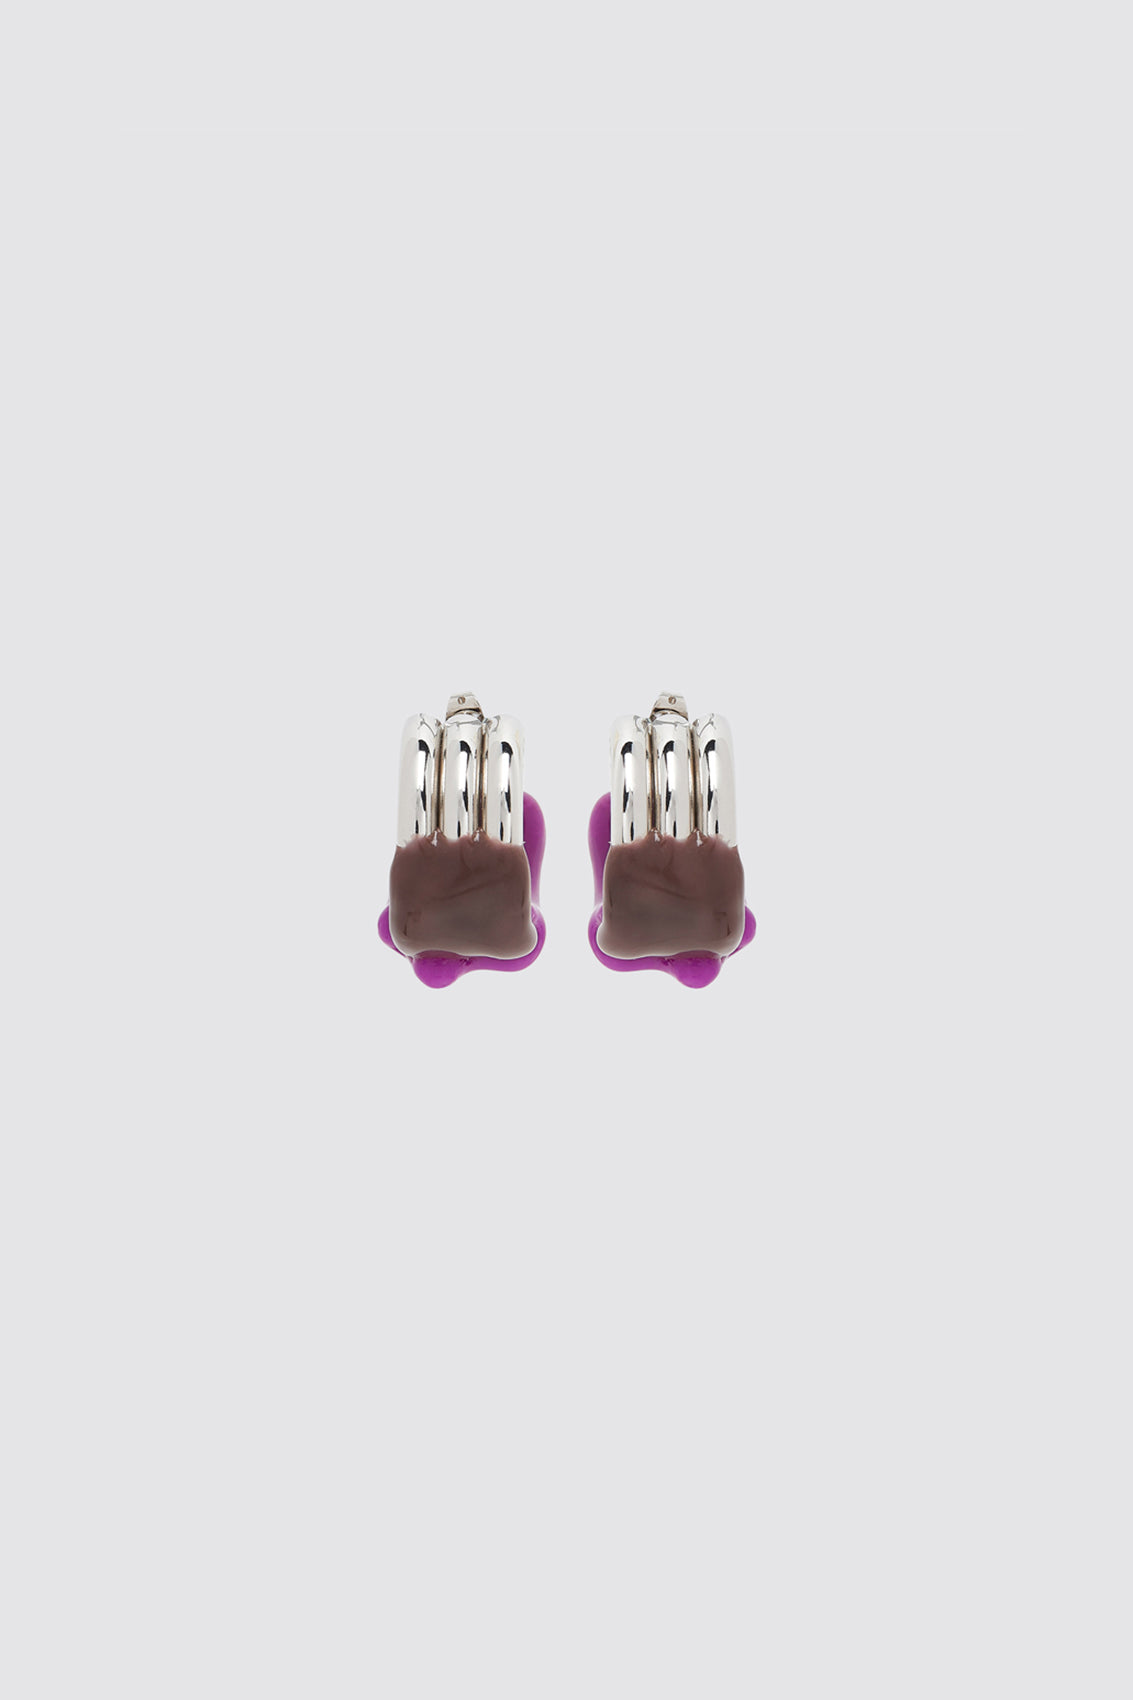 PURPLE & BROWN RUBBERIZED TRIPLE SILVER EARRINGS